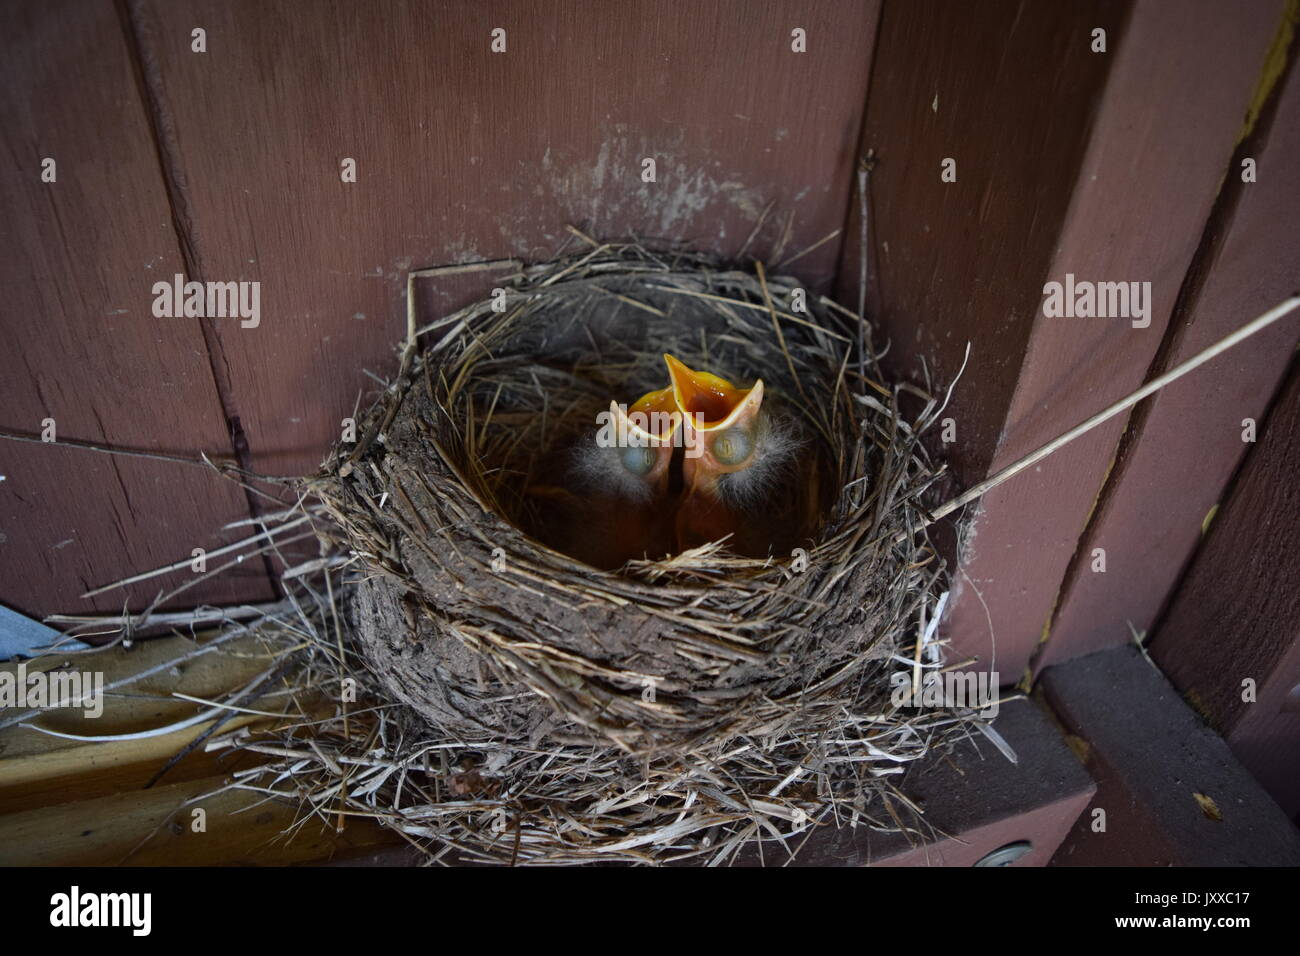 hungry baby birds - Stock Image